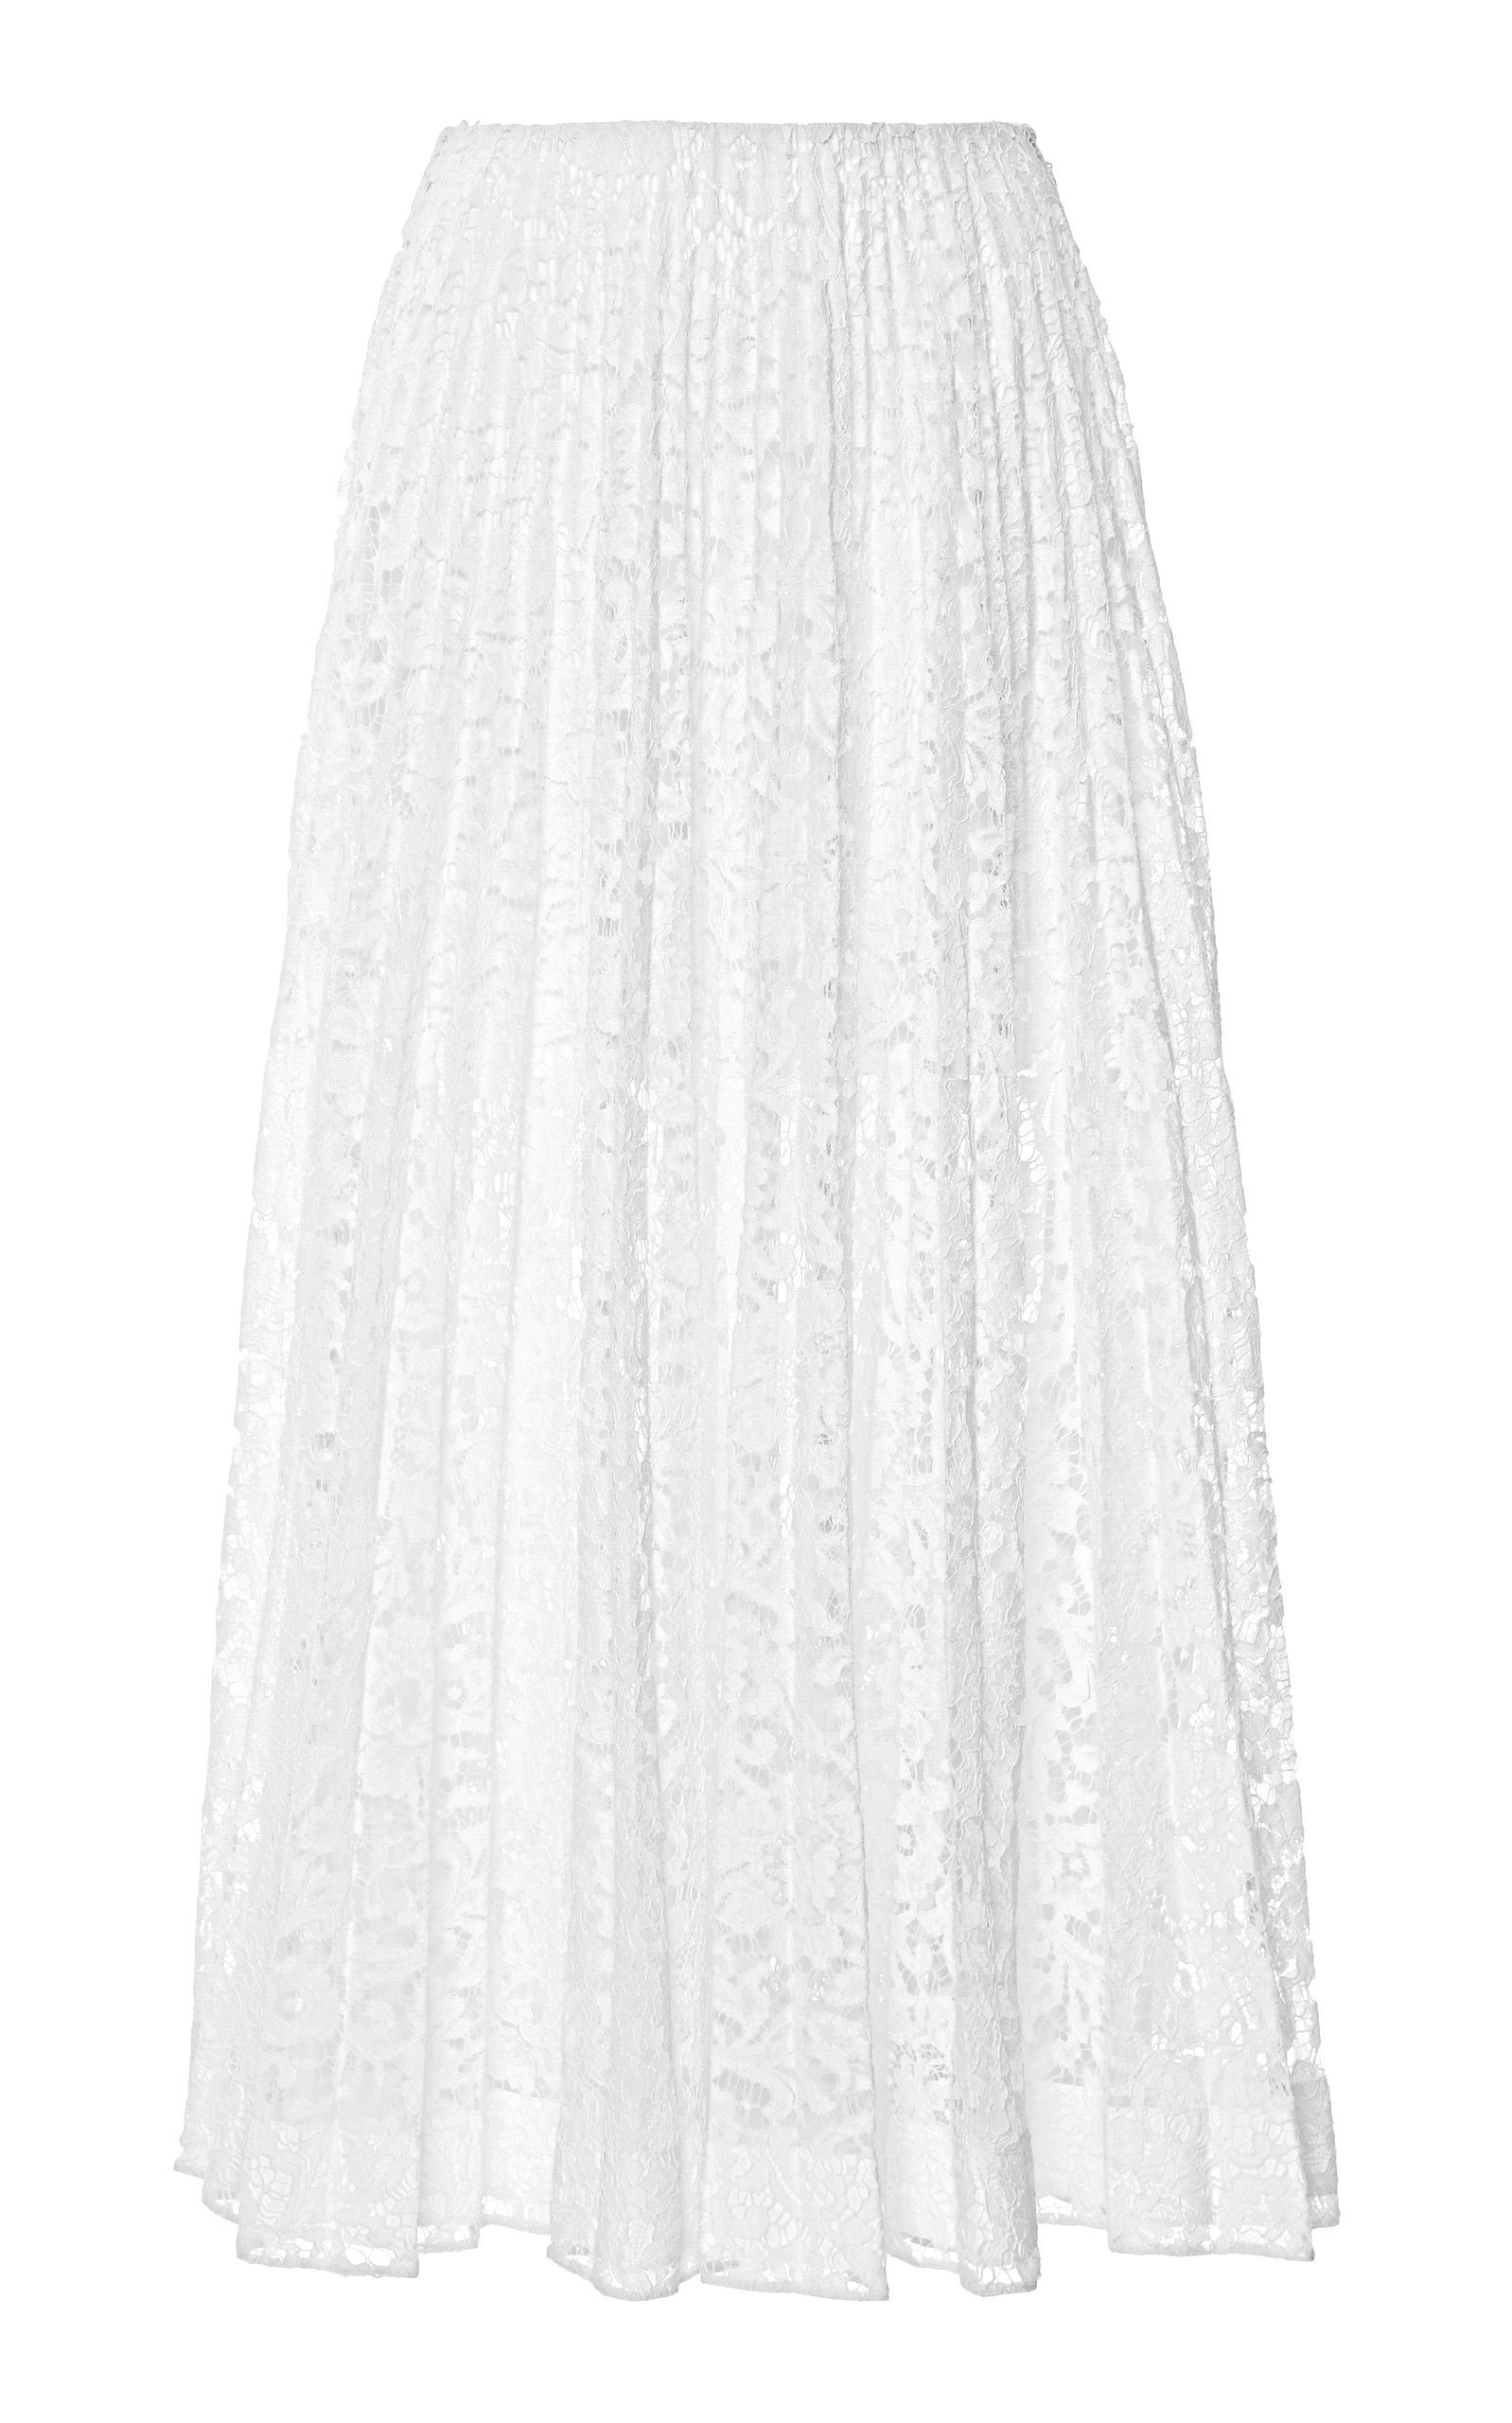 Valentino Sheer Pleated Lace Maxi Skirt Size: 44